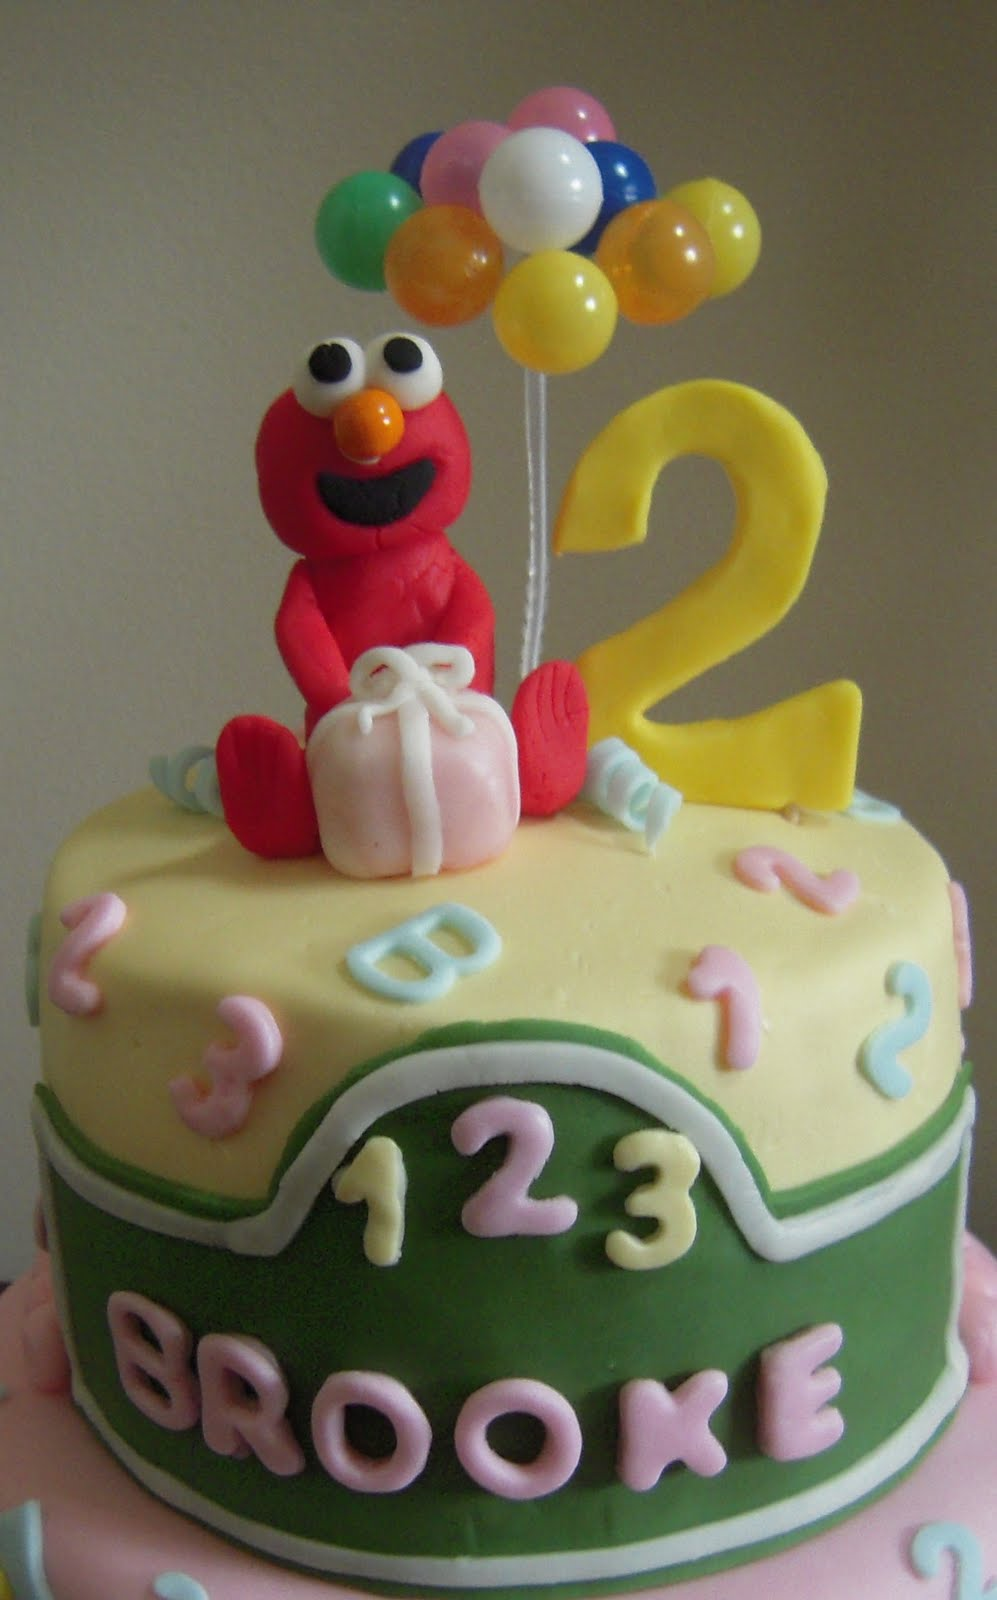 Elmo Birthday Cake Safeway Image Inspiration of Cake and